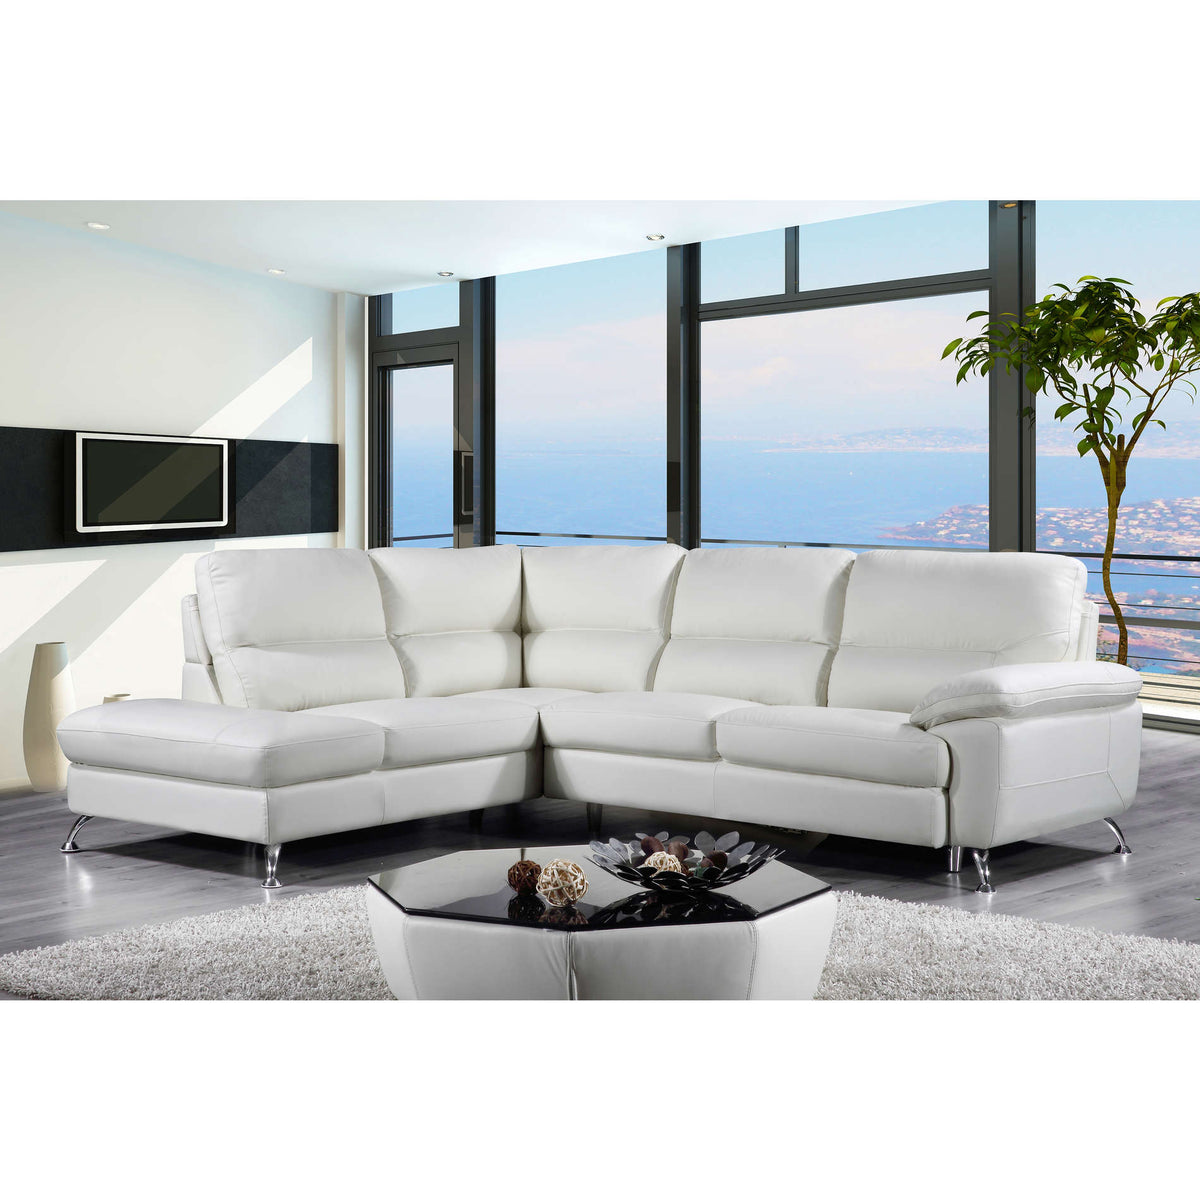 "Cortesi Home Contemporary  Miami Genuine Leather Sectional Sofa with Left Facing Chaise Lounge, Cream 80""x98"""